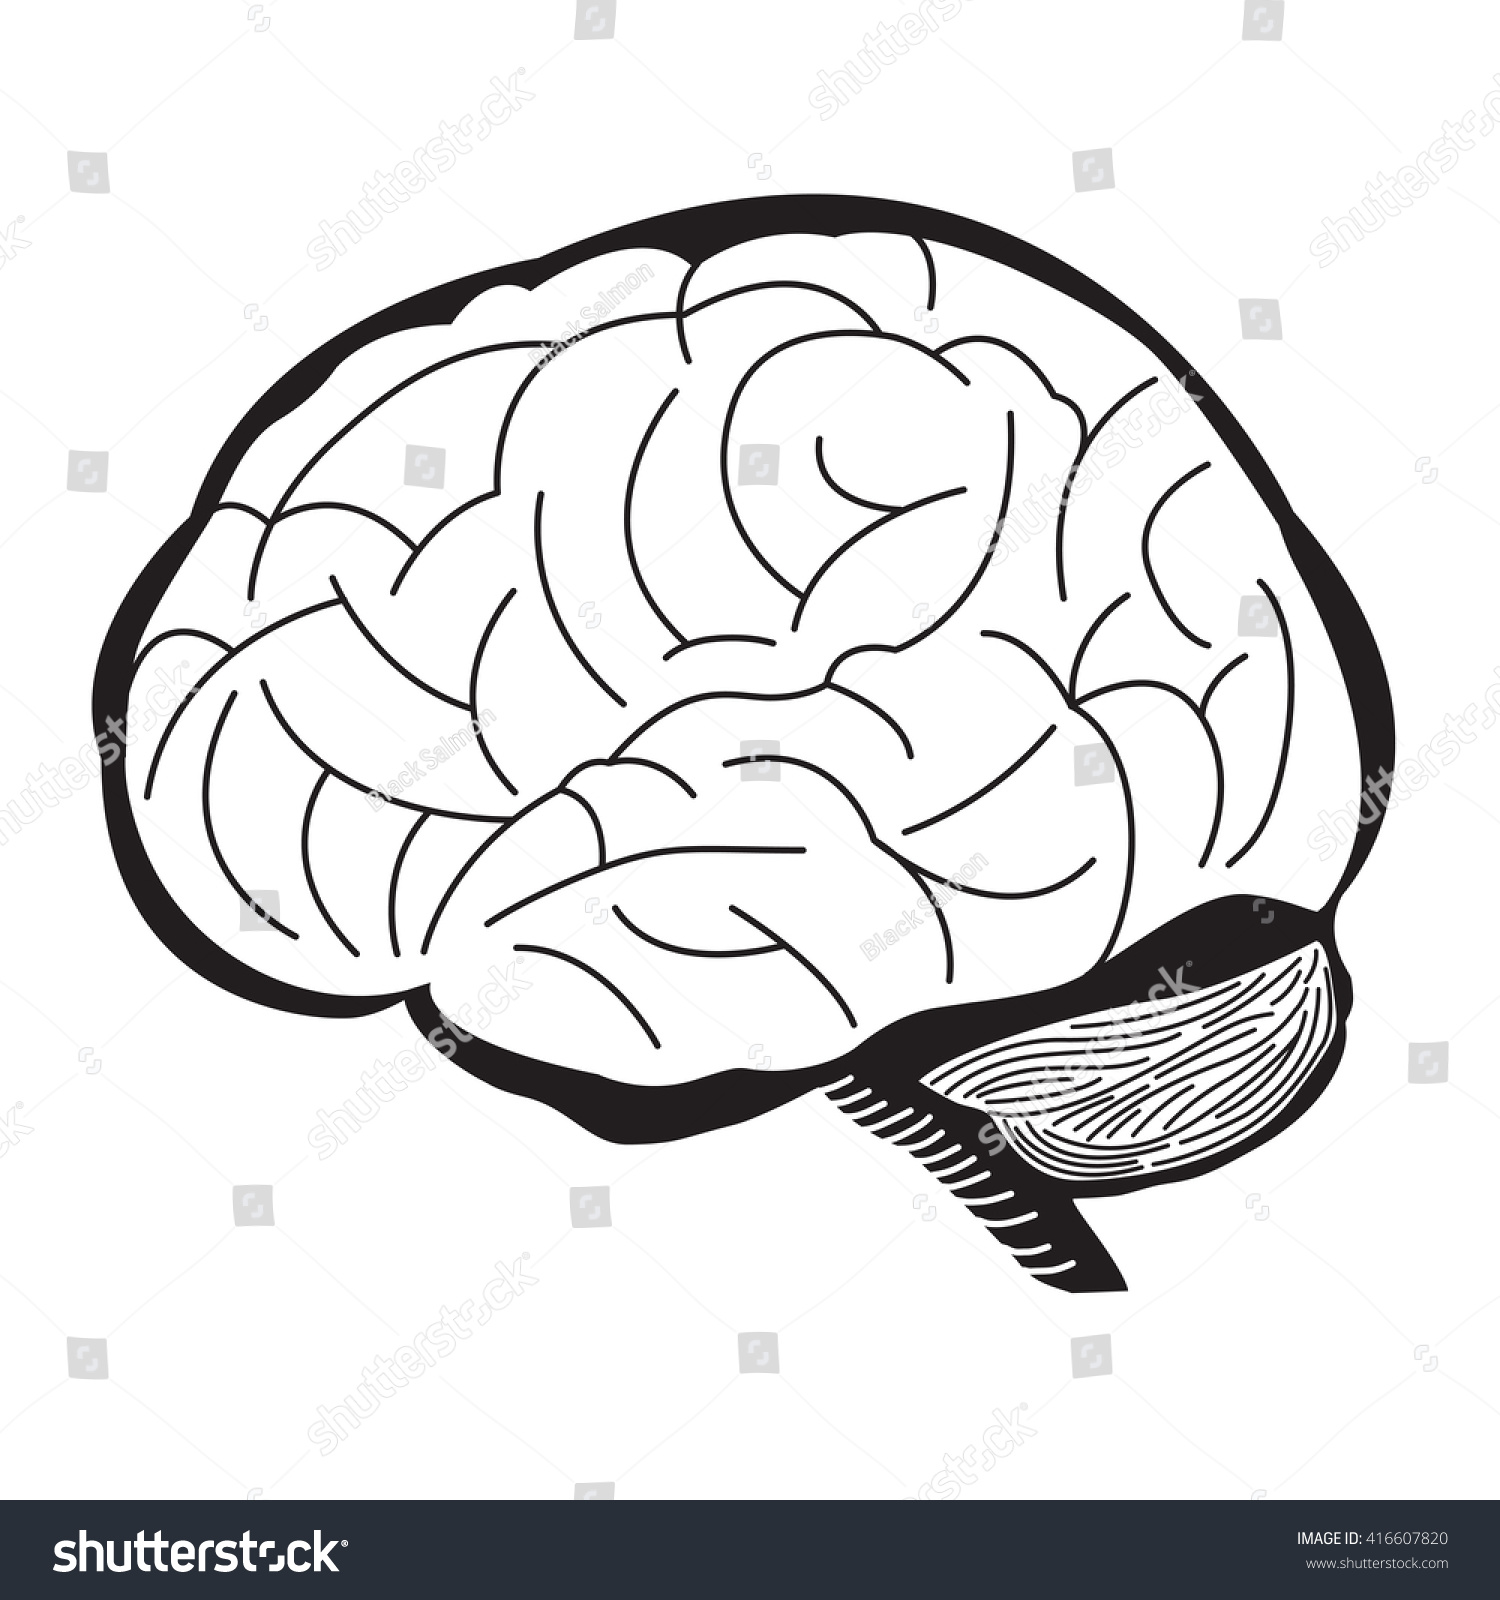 Black And White Of Human Brain Outline Draw Illustration Ez Canvas